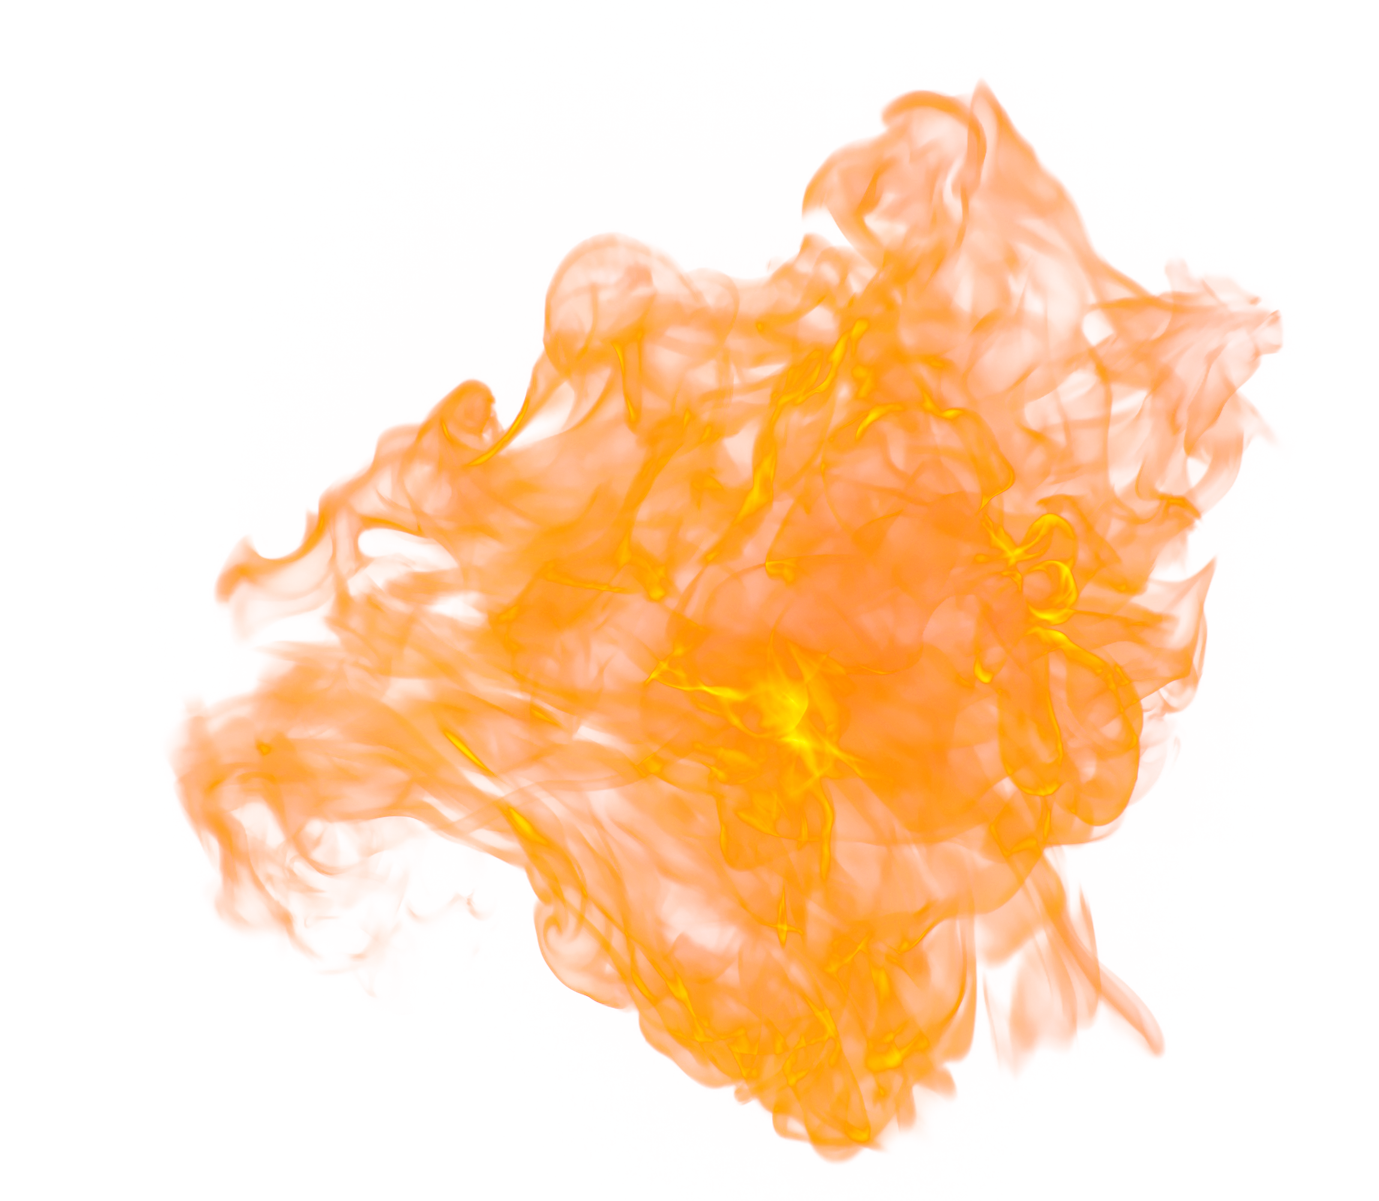 Fire Flame Png Image Flames Fire Png Photo